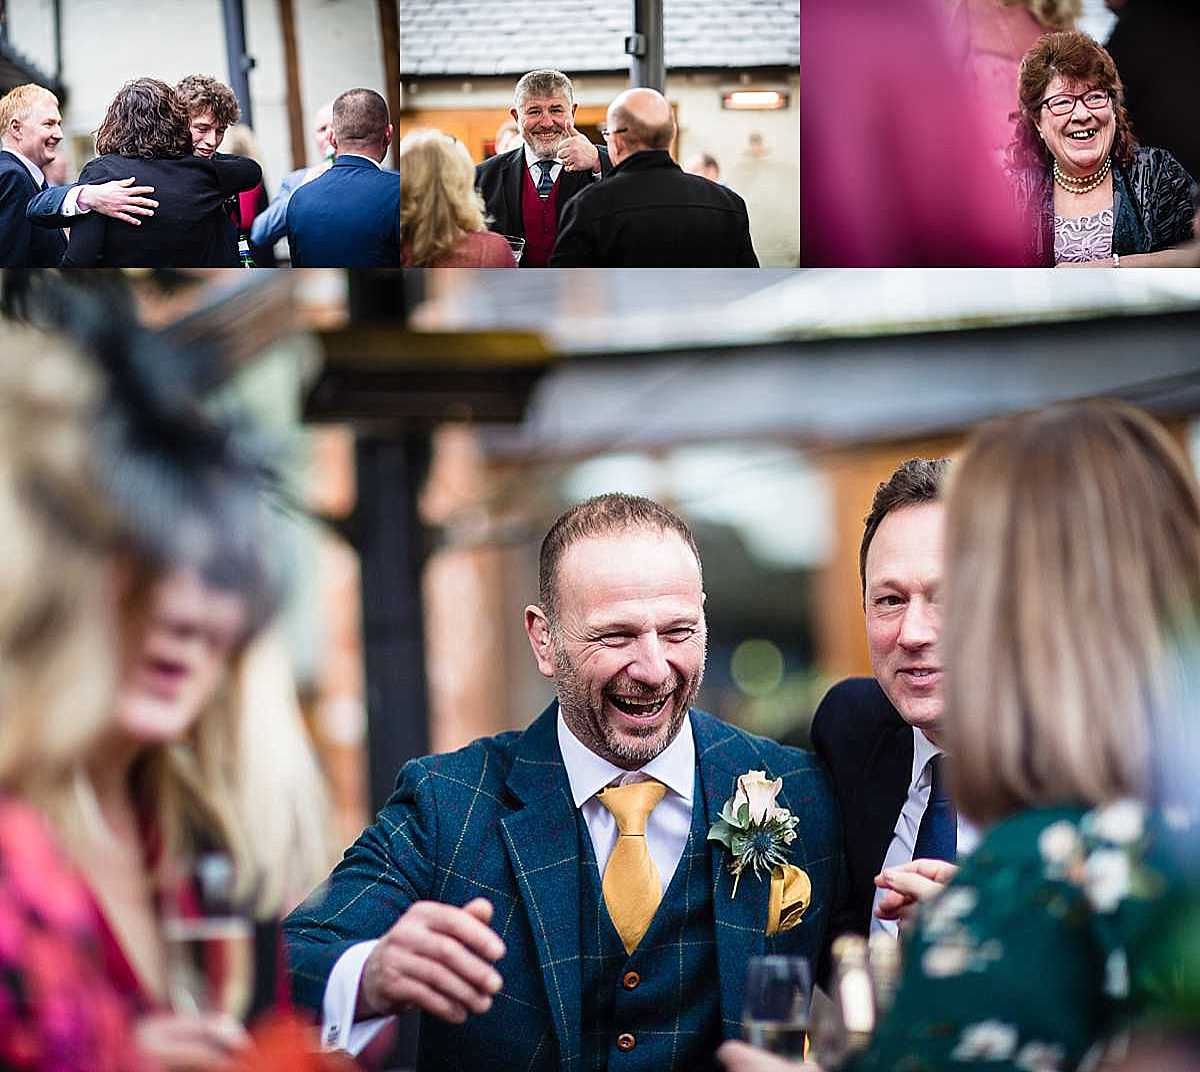 happy guests reactions as they are meeting and greeting at the cock o barton wedding